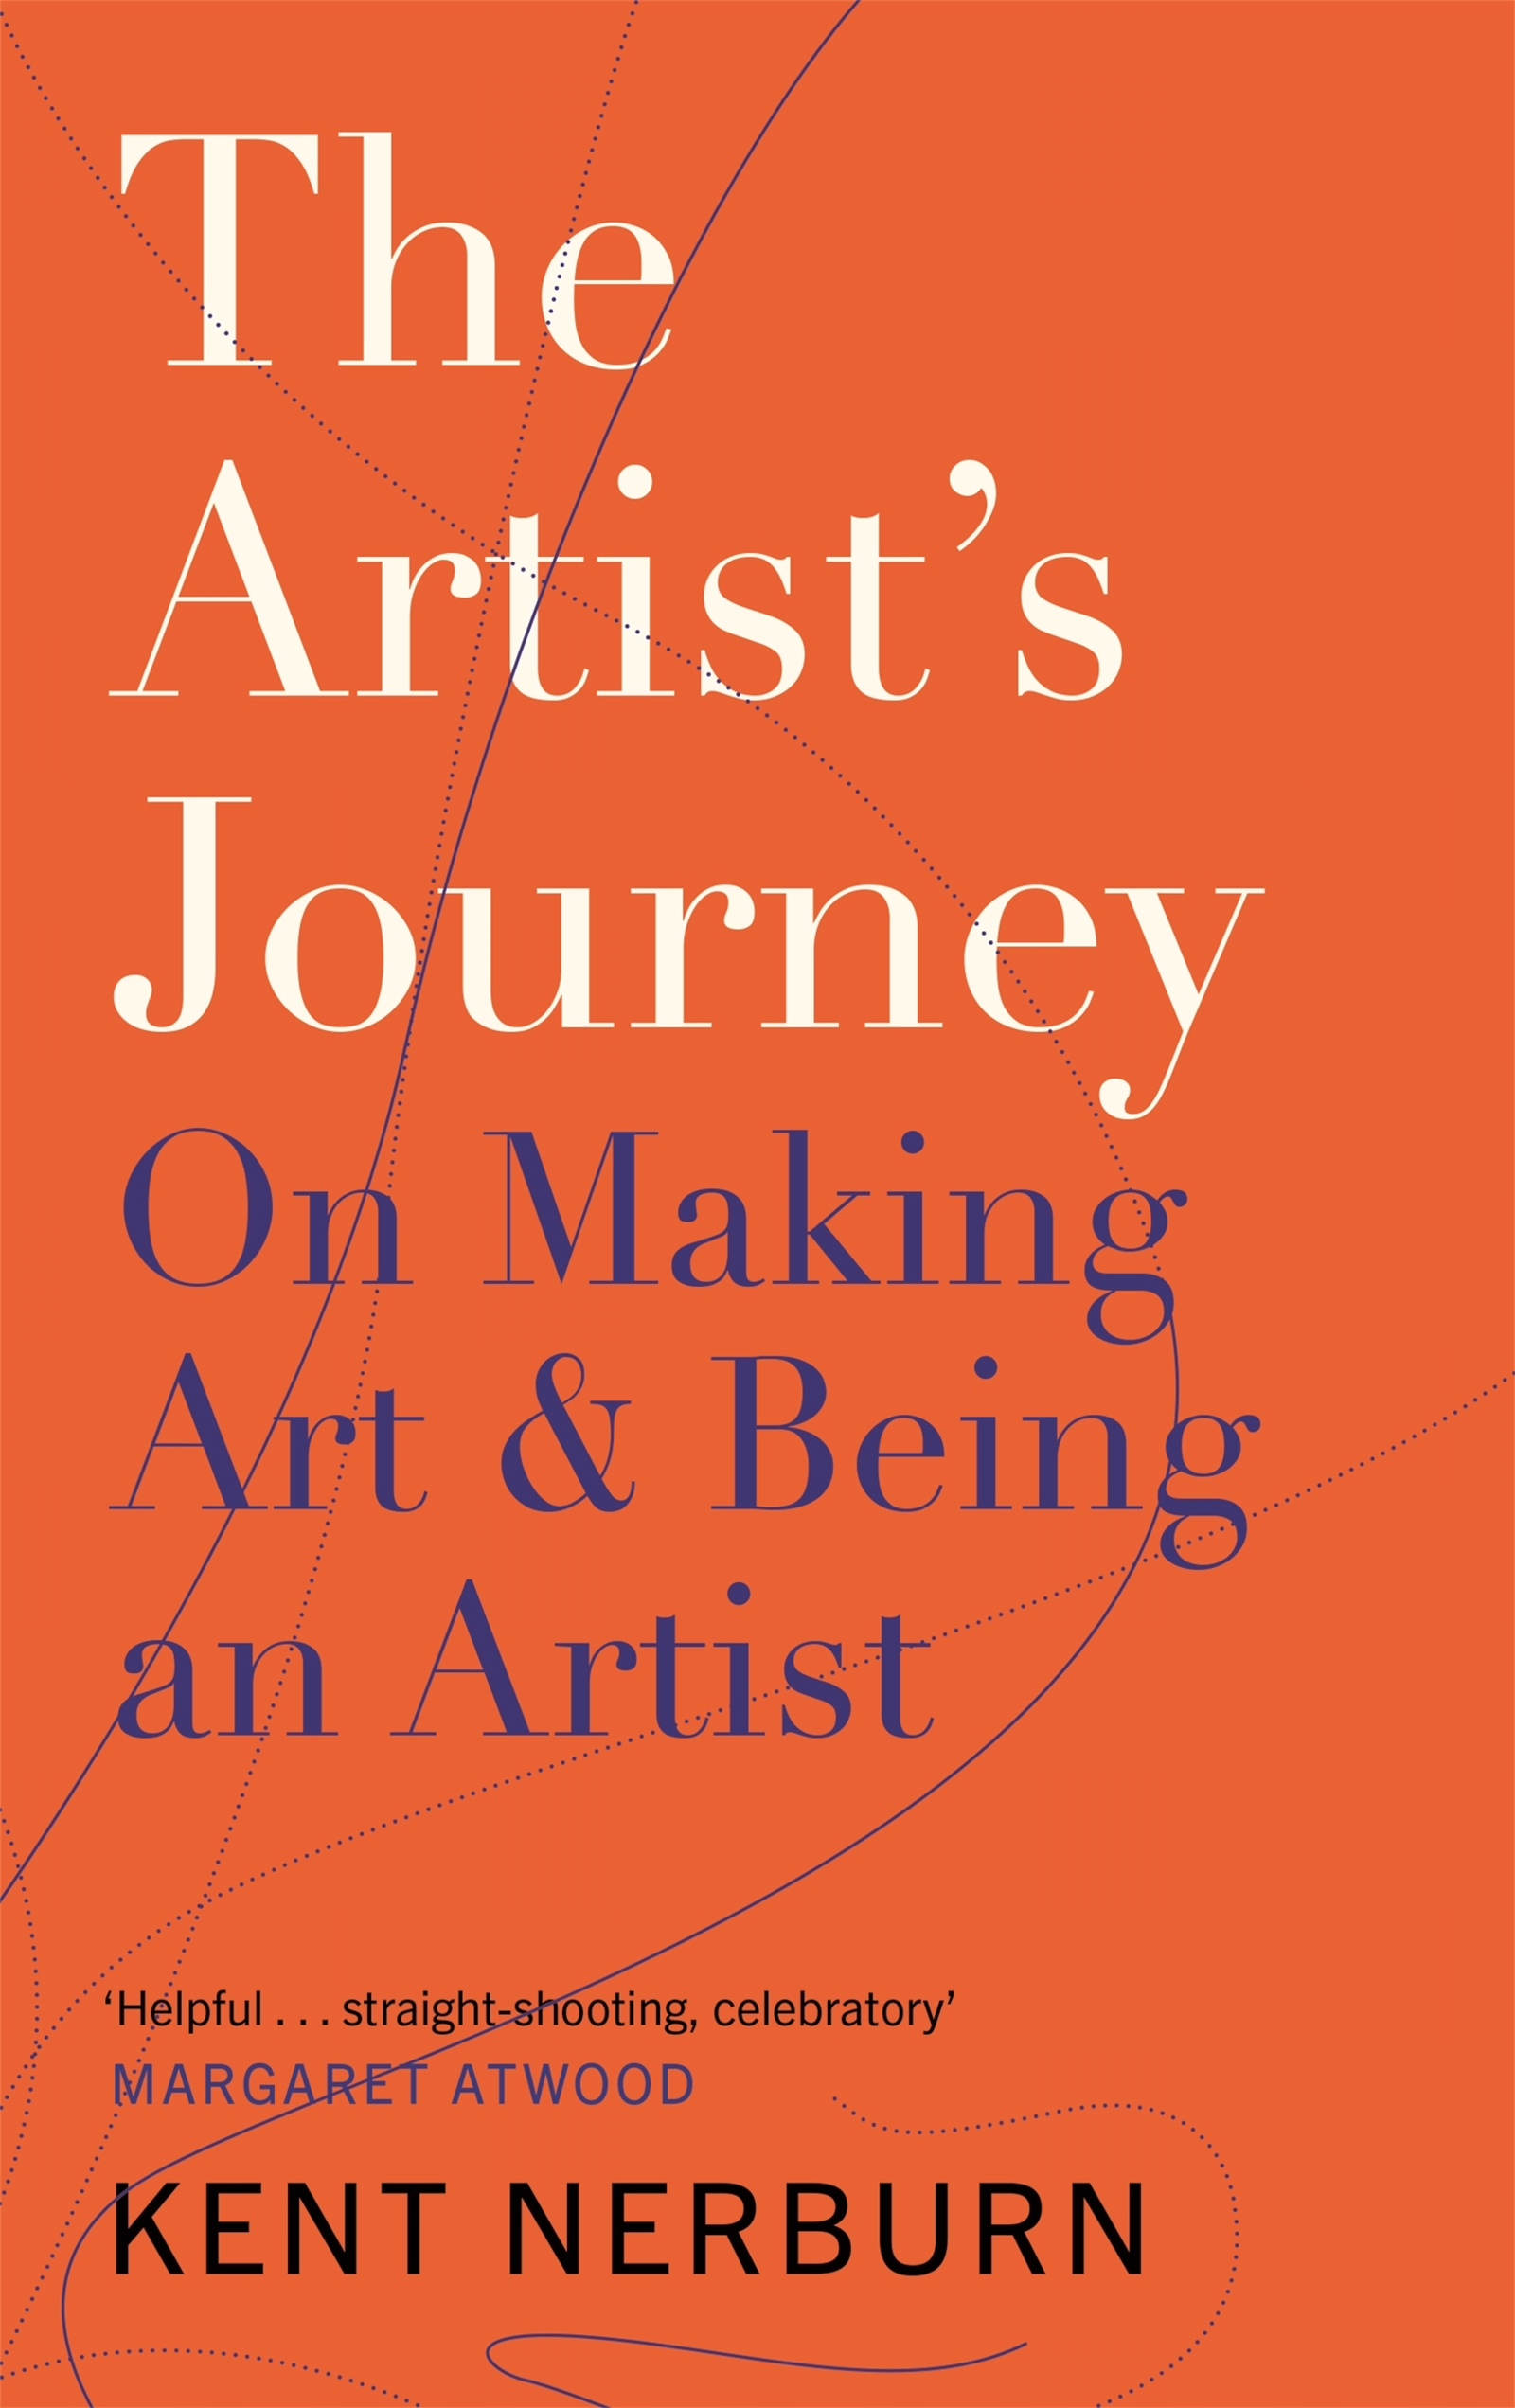 The Artist's Journey